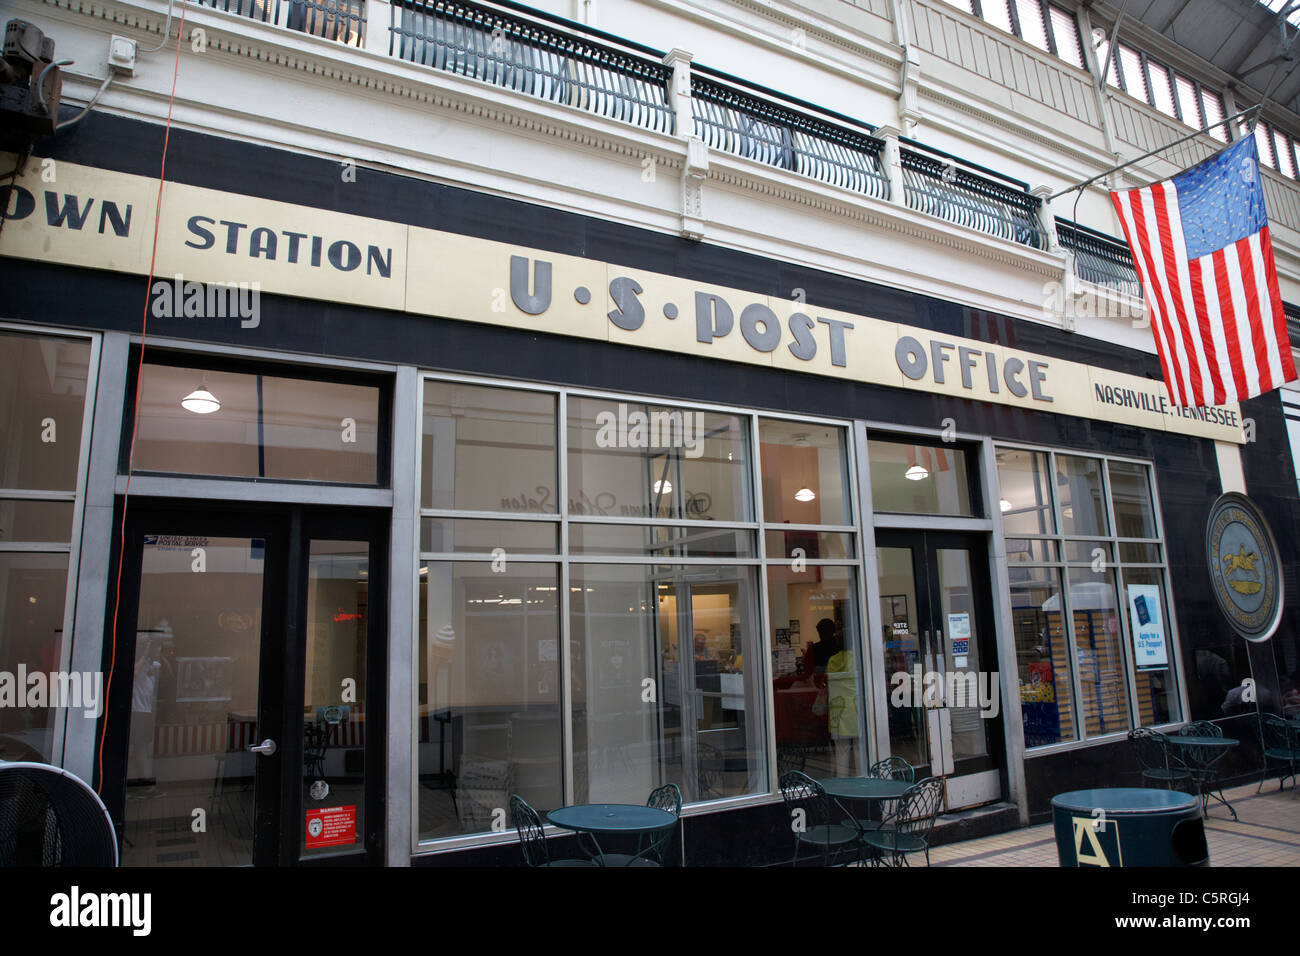 us post office in the arcade Nashville Tennessee USA - Stock Image